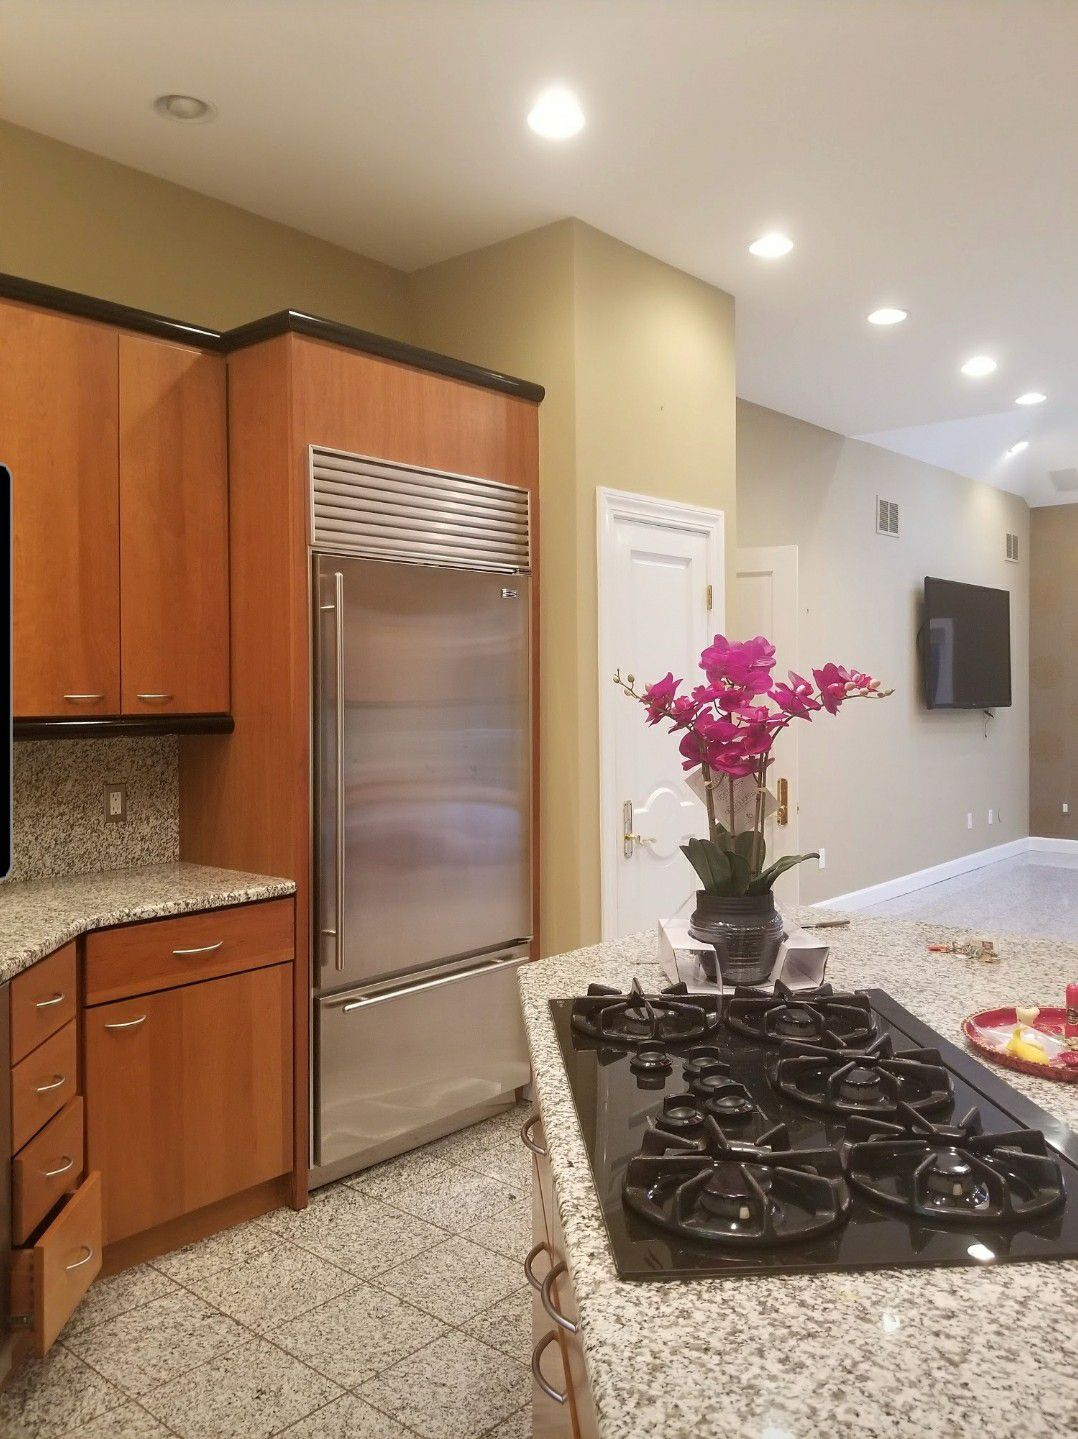 New And Used Kitchen Cabinets For Sale In Springfield Ma Offerup